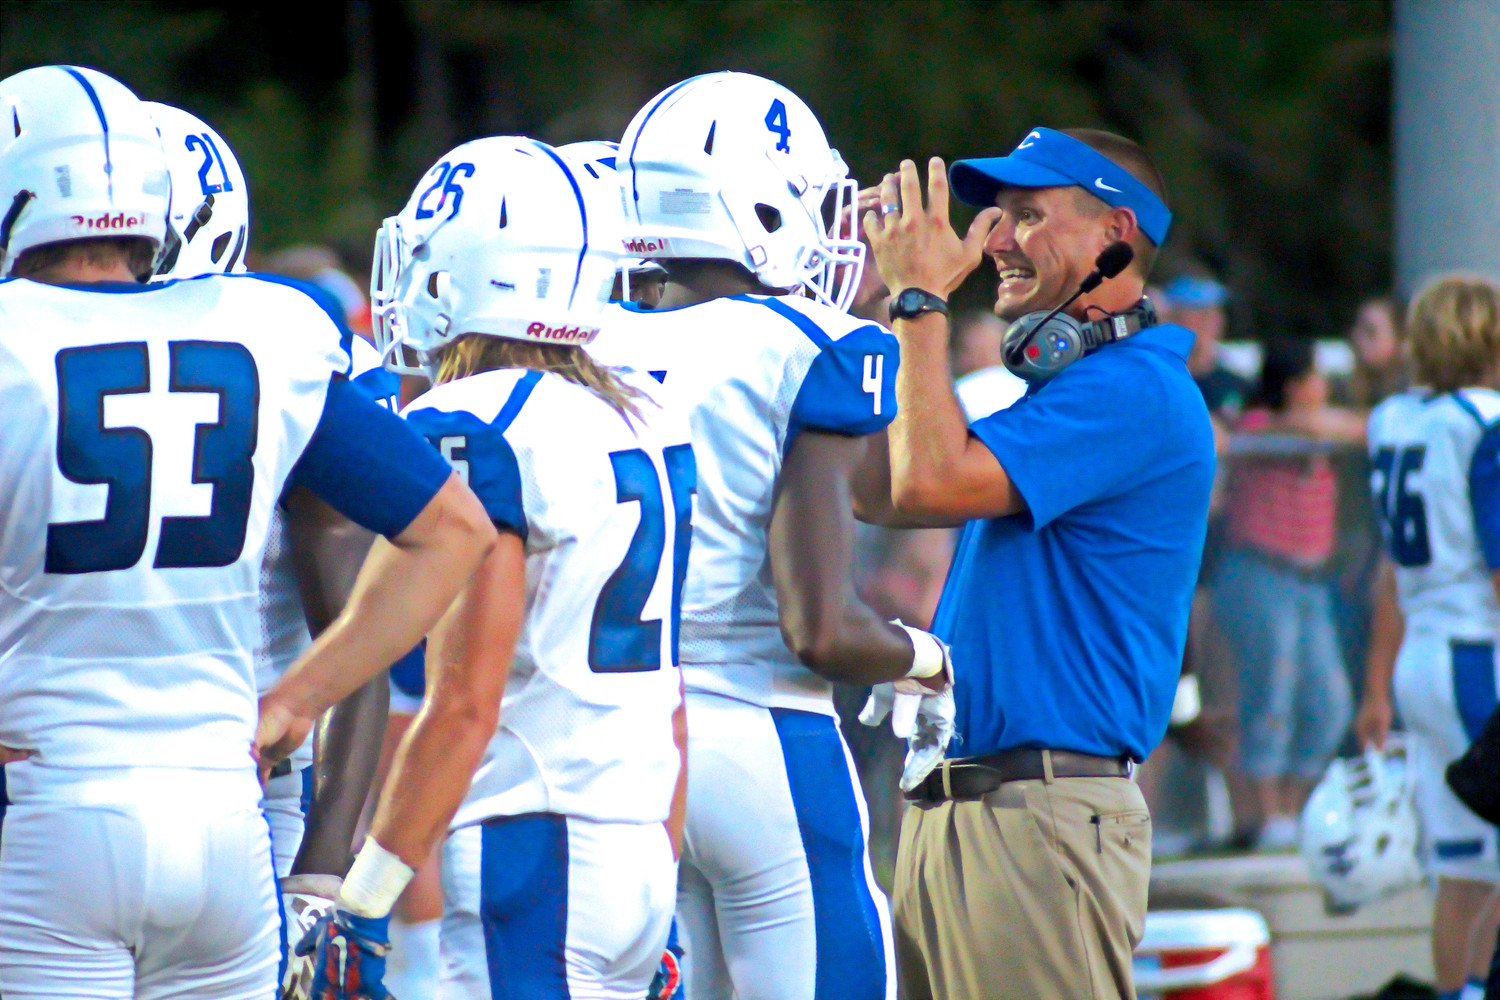 Clay High coach Joshua Hoekstra was frustrated throughout the game with a series of dropped passes and fumbles that stalled Blue Devil scoring efforts.